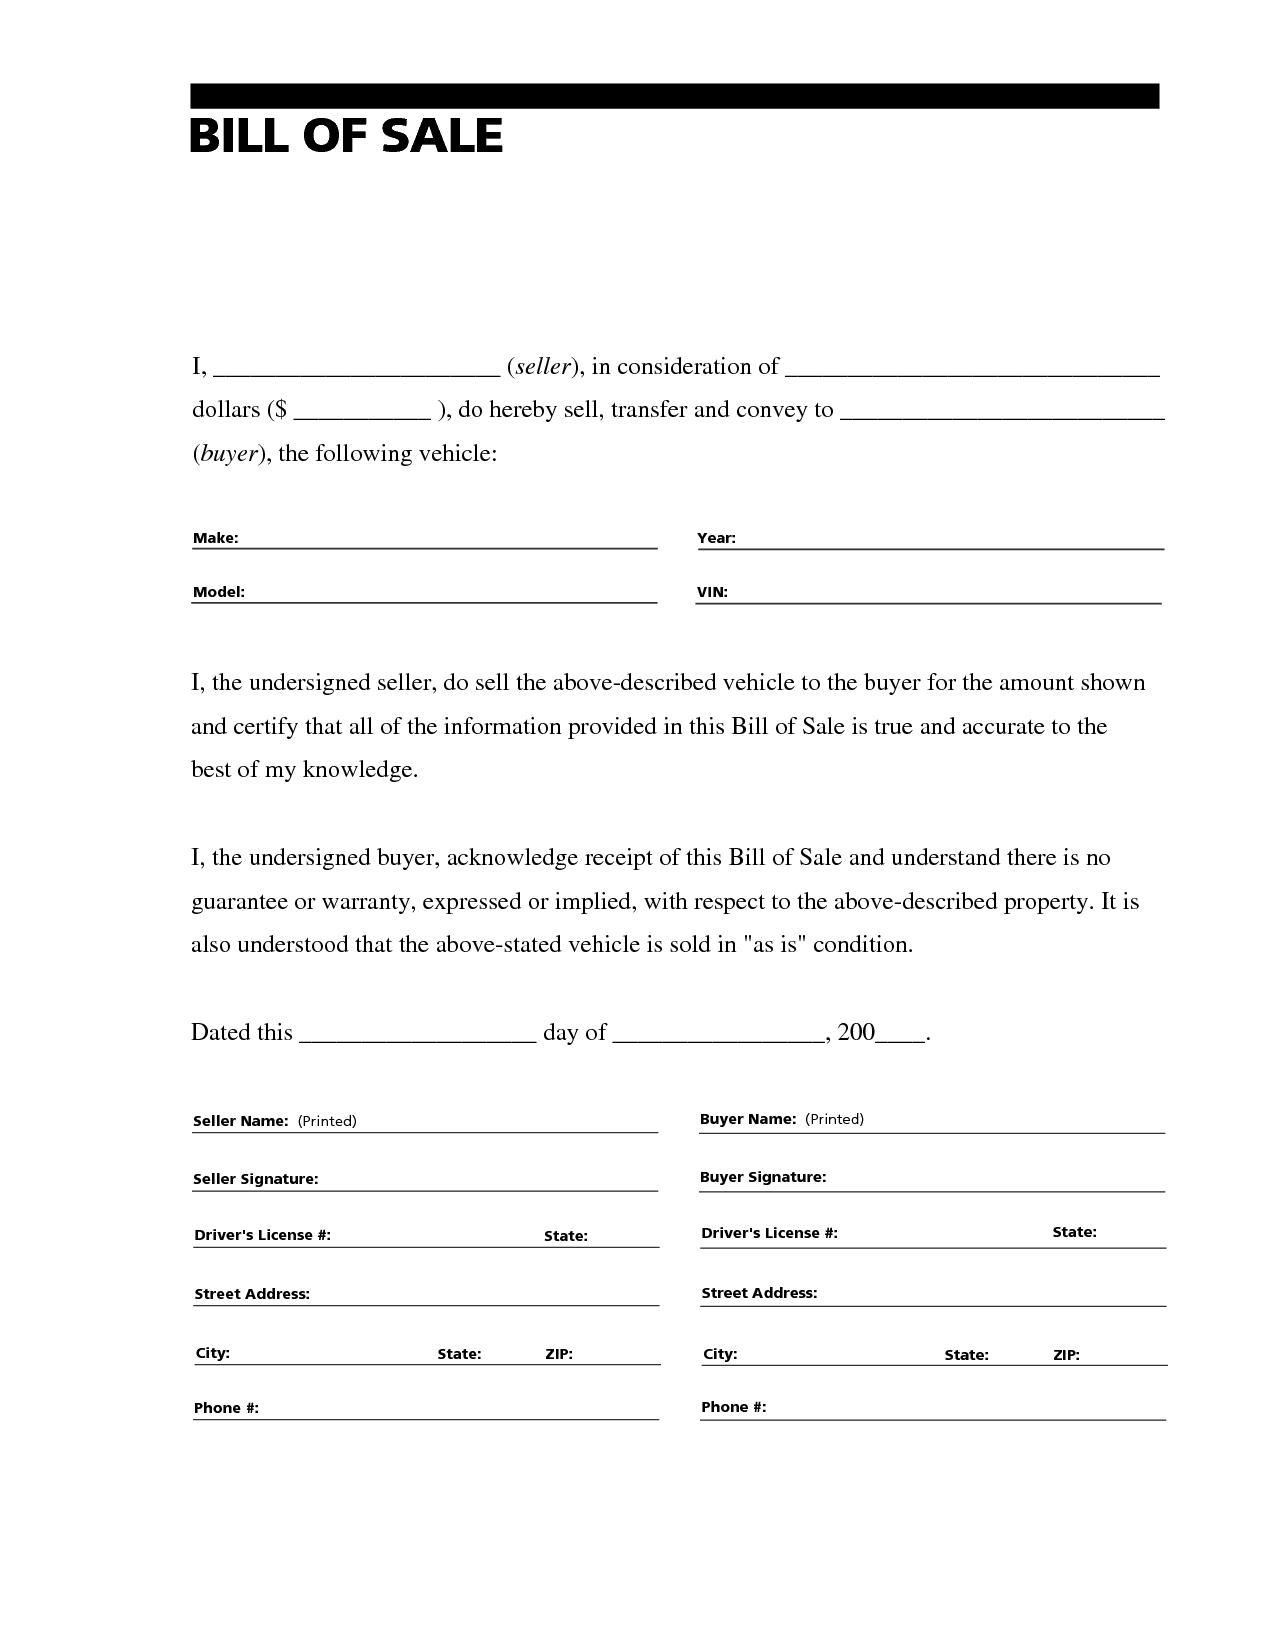 Eviction Letter Template Florida - Printable Sample Bill Of Sale for Rv form